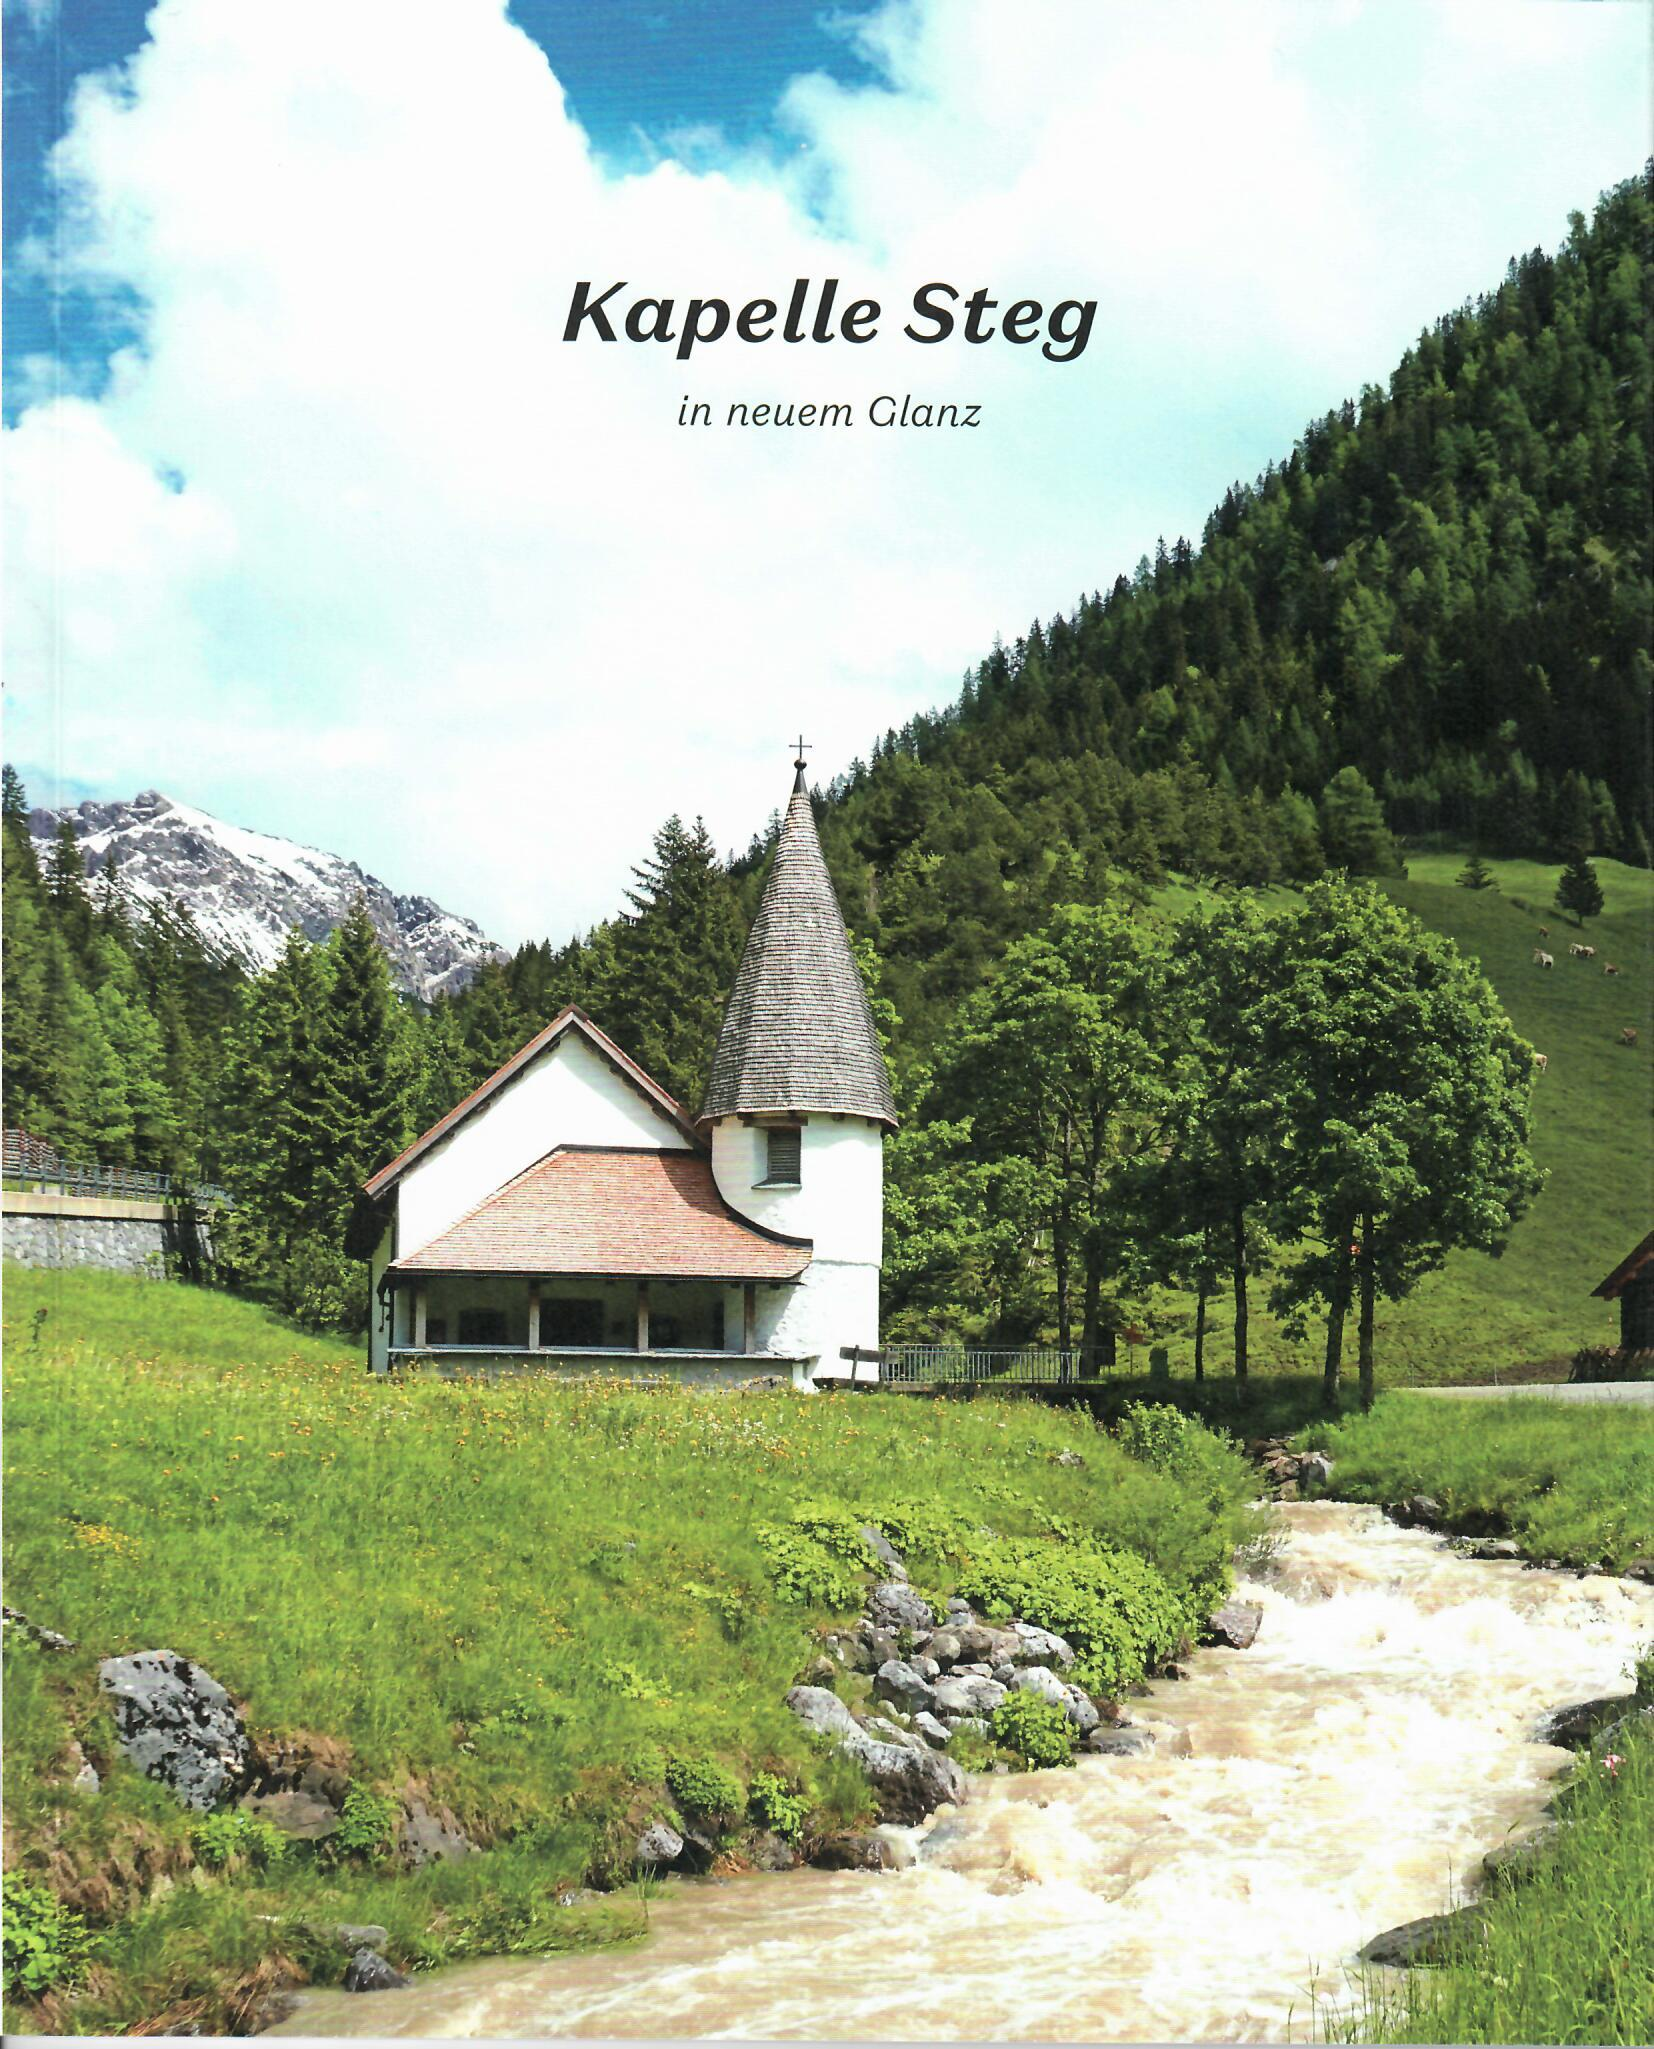 kapelle-in-neuem-glanz-08-09-16